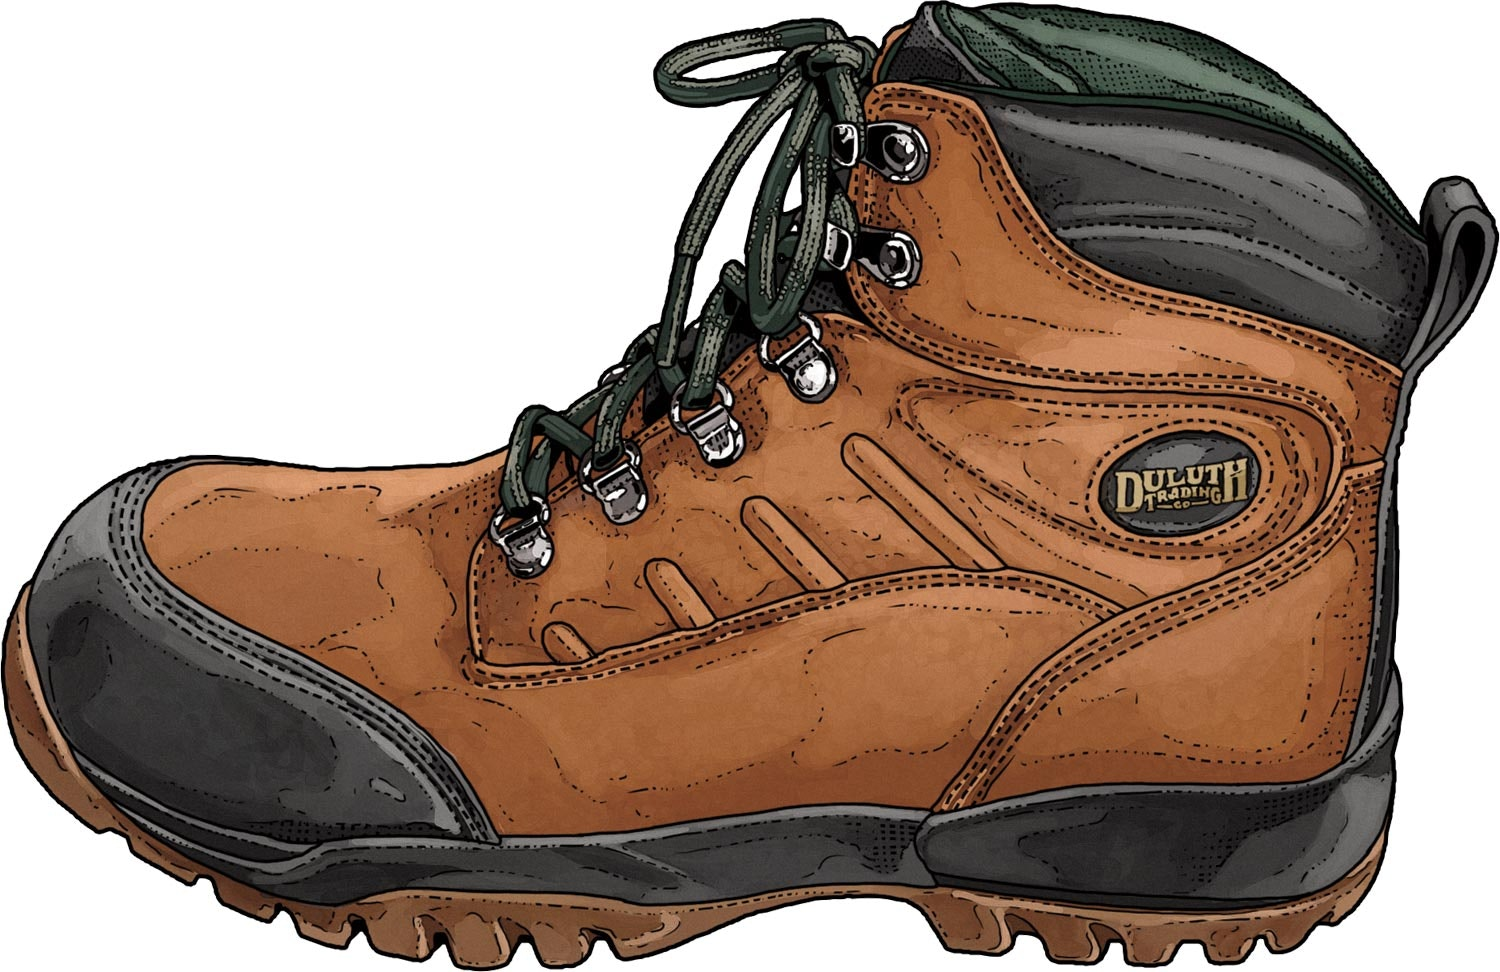 """Men's Grindstone 6"""" Waterproof Composite Toe Boots - Duluth Trading"""